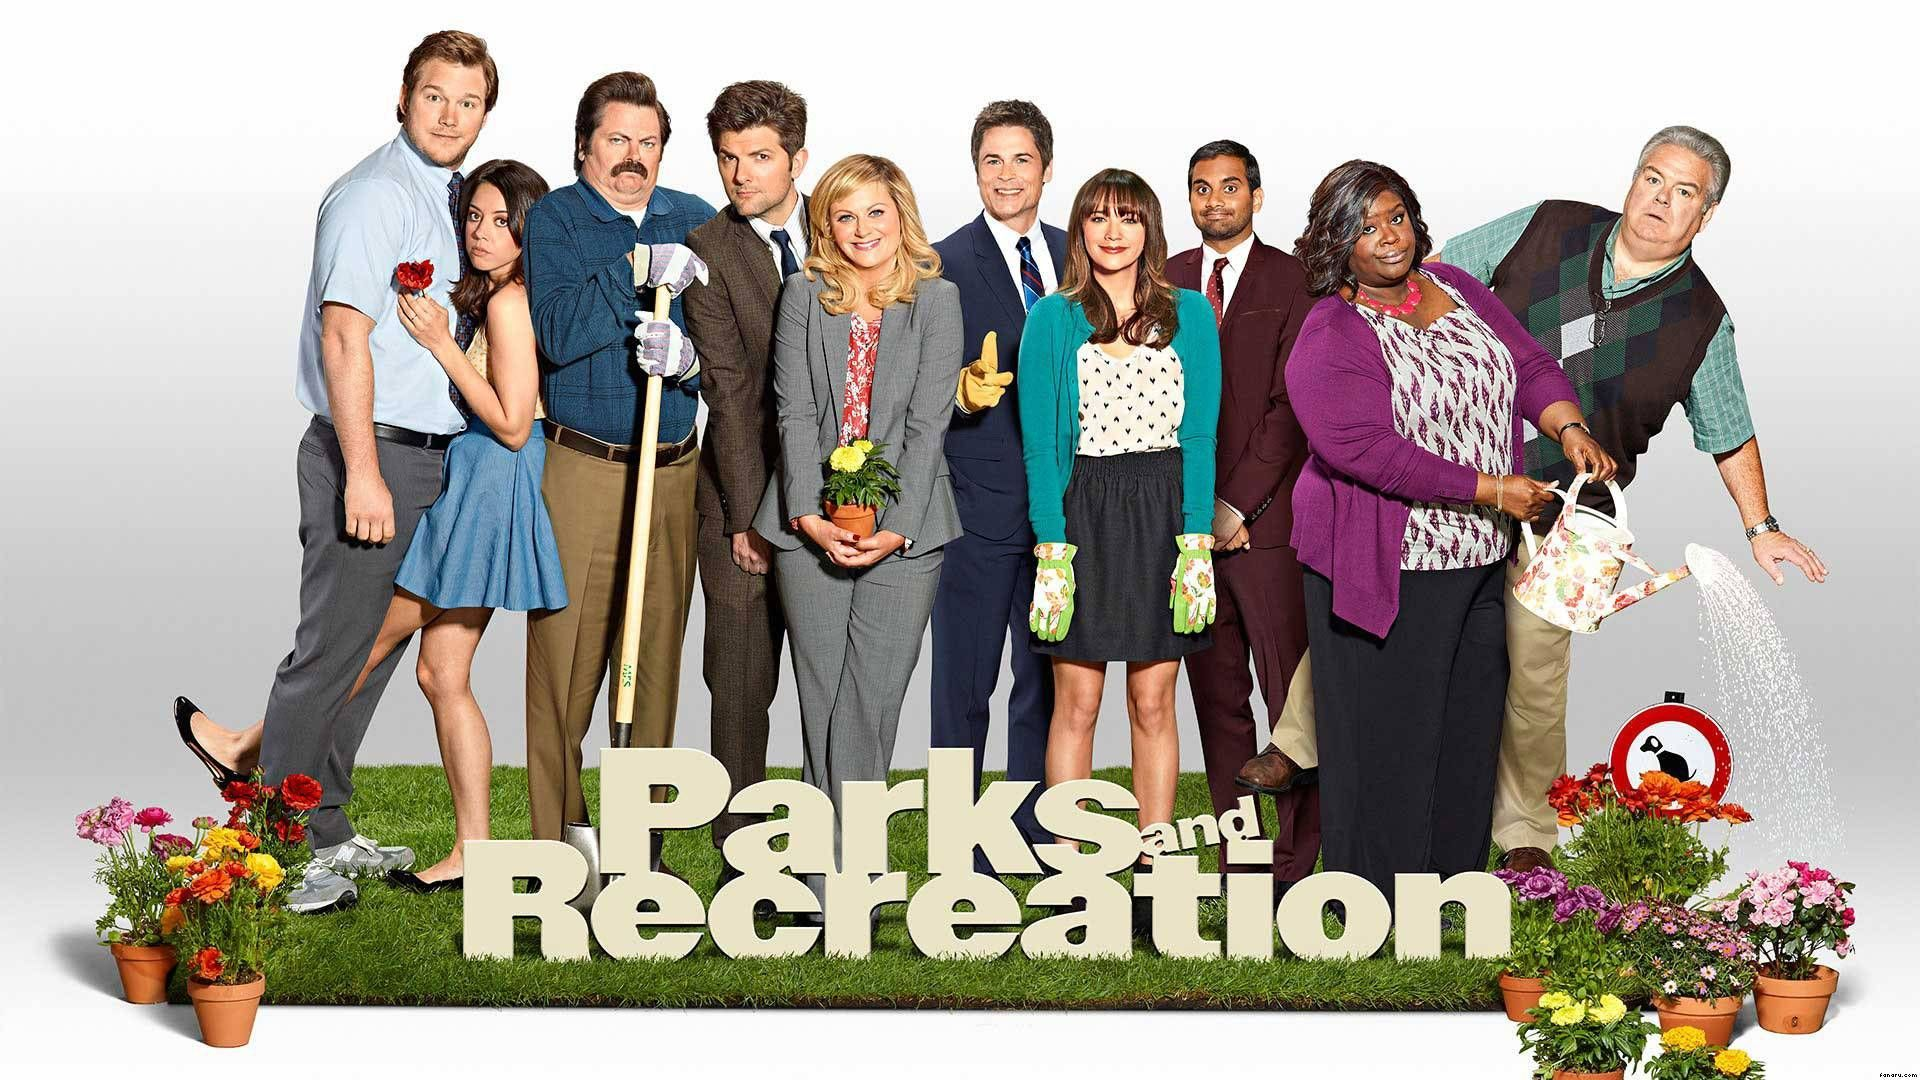 8708 - Parks and Recreation